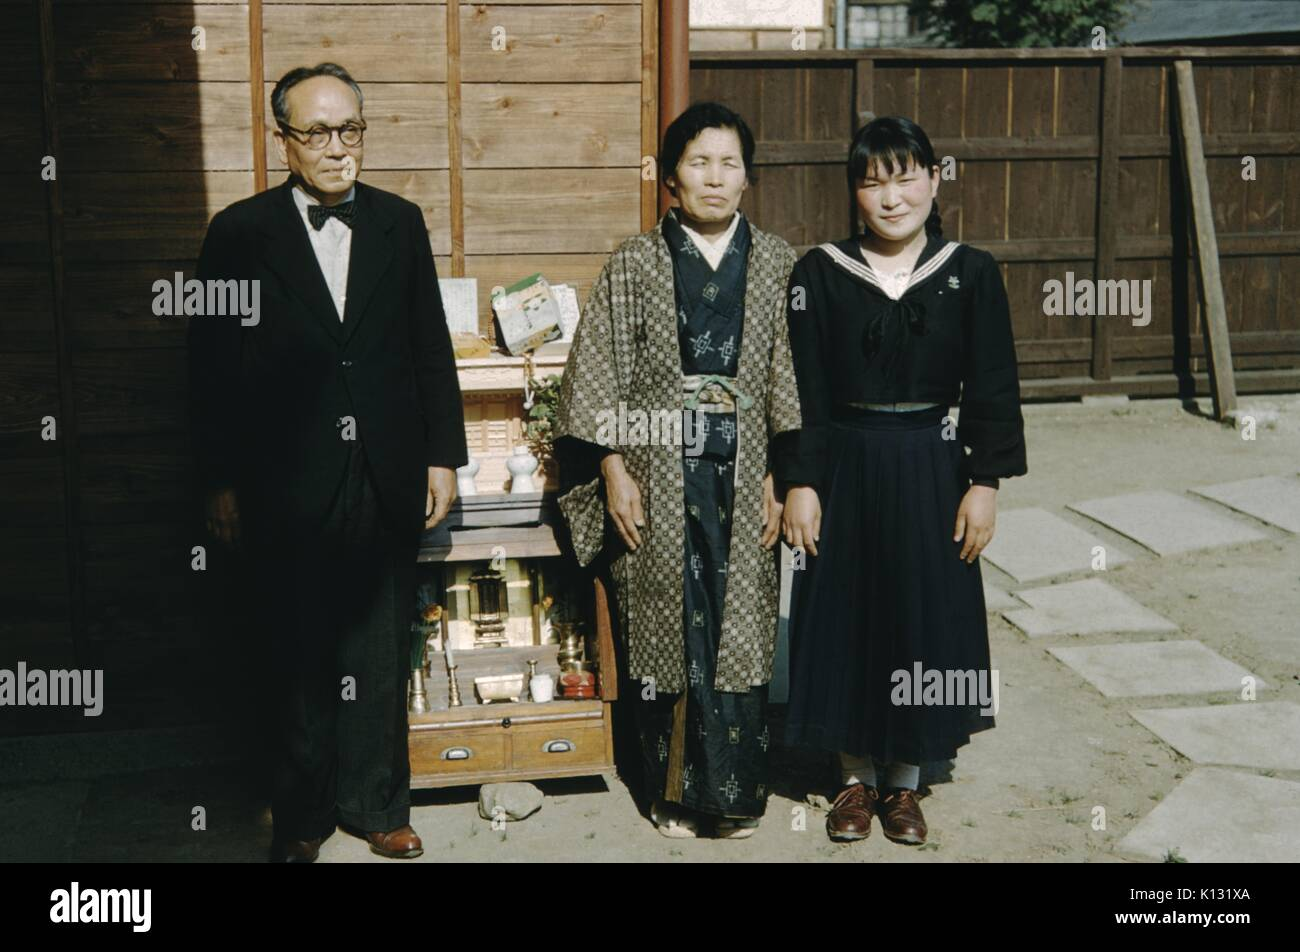 Japanese Family At Missionary Church Mature Man In Suit And Bow Tie Standing With His